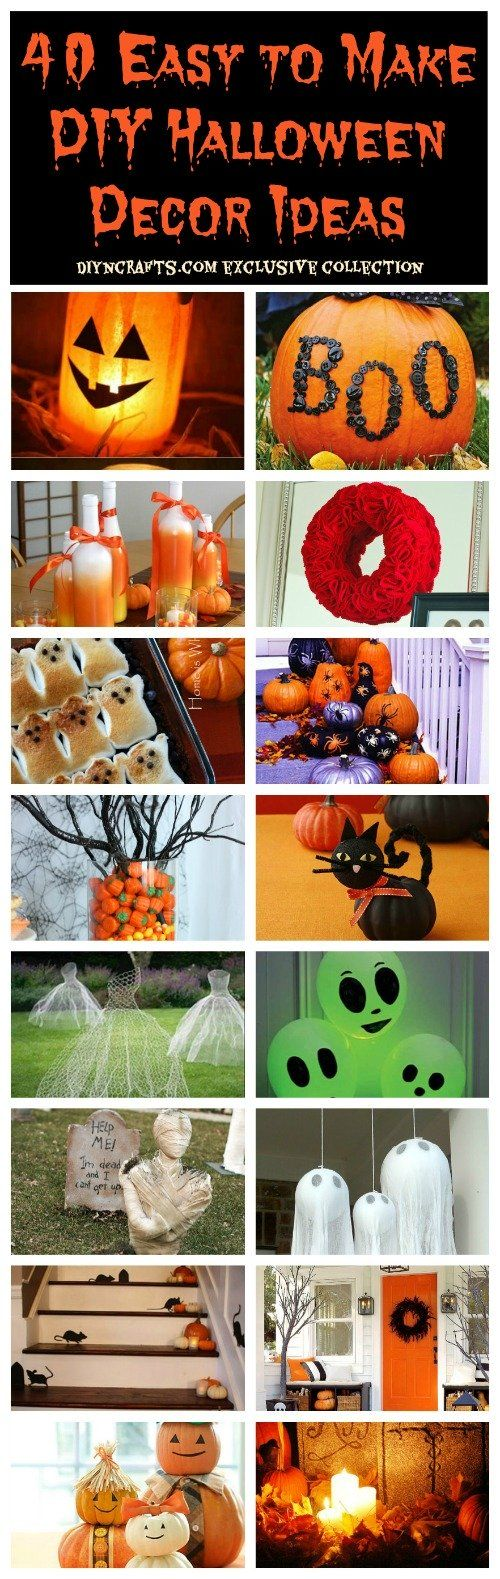 40 Easy to Make DIY Halloween Decor and Organizing Ideas! Really there are decor that could be used in as just FALL not only Halloween! But these are some great ideas if you are stumped for some easy DIY ideas! For some cool containers, plants or even ribbon and fresh flowers call H&J Florist and Greenhouses in St Joseph MI 269-429-3621